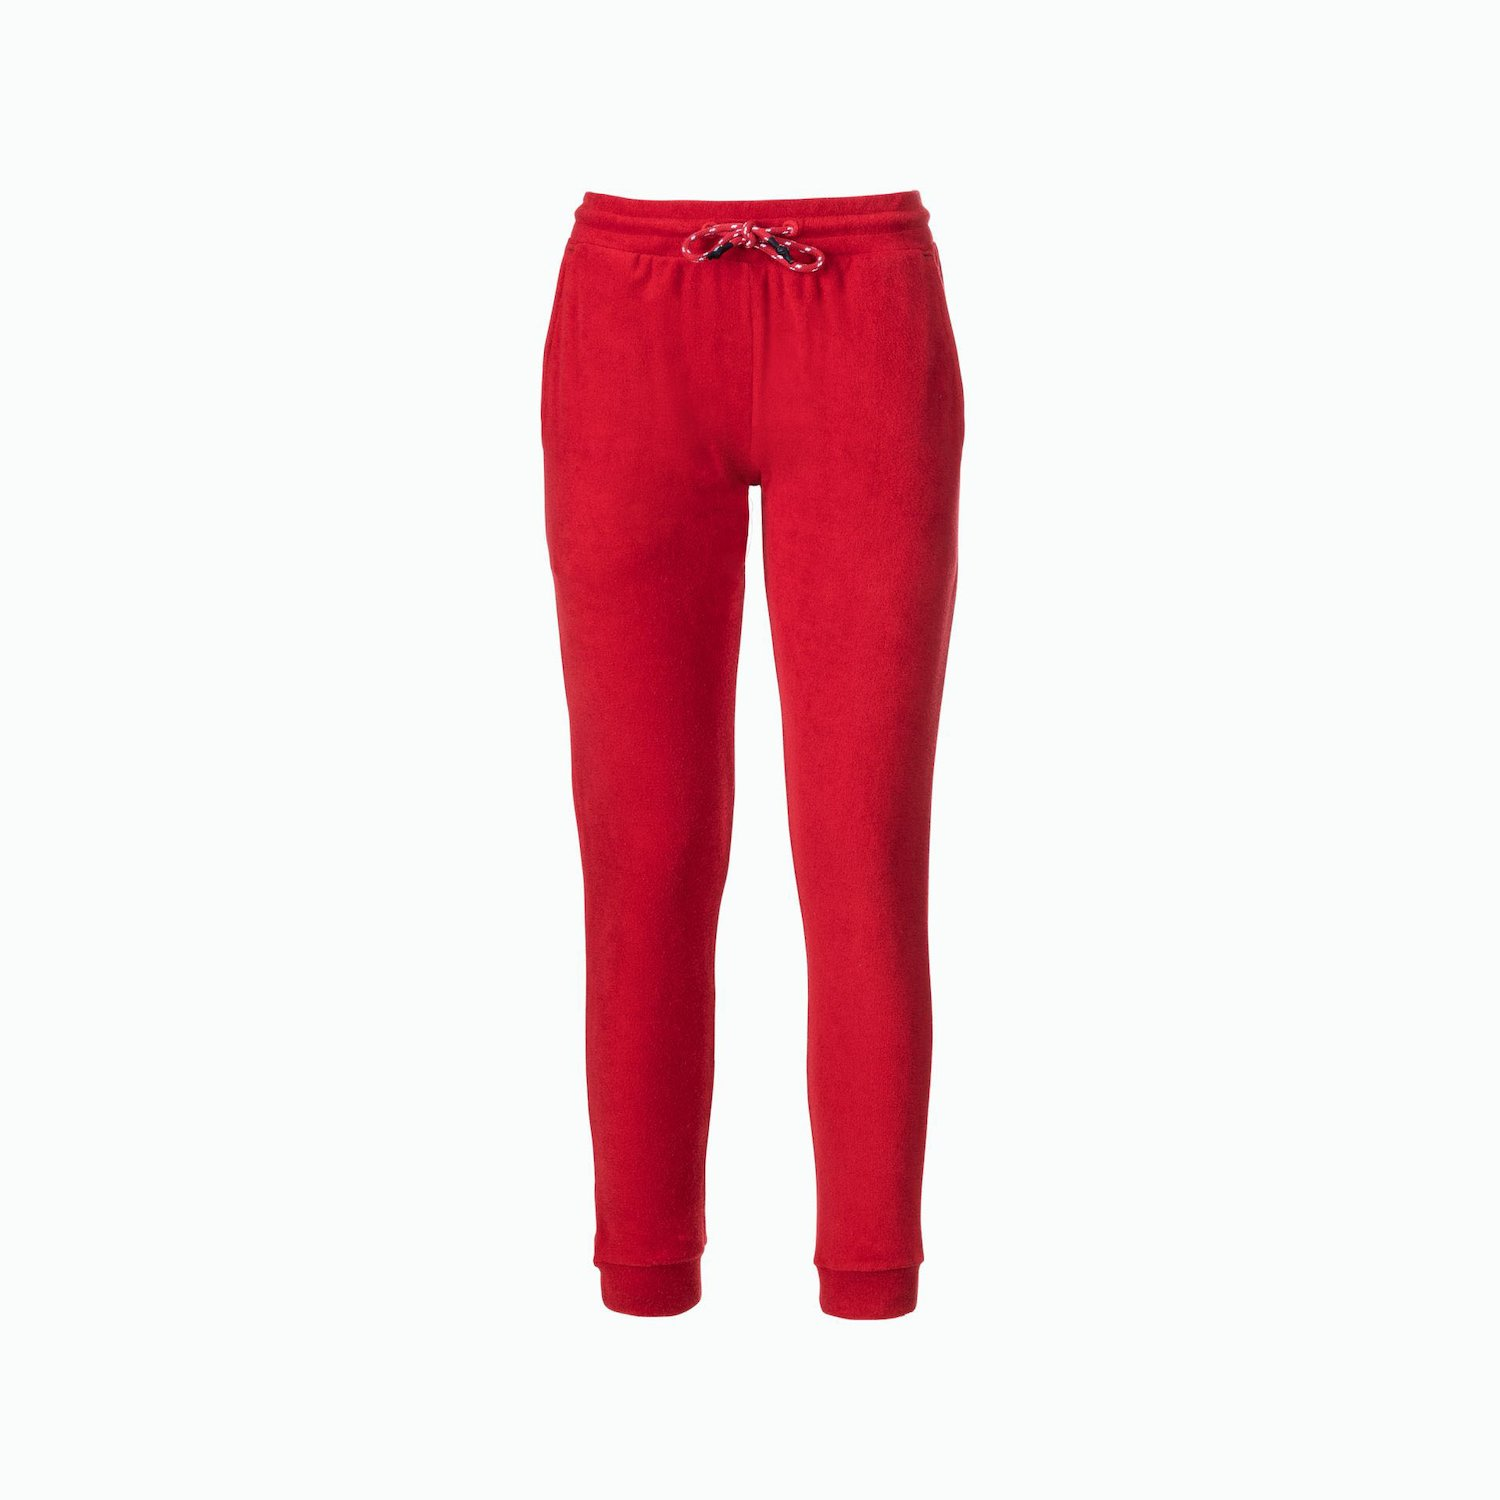 C137 Sweatpants - Rojo Slam